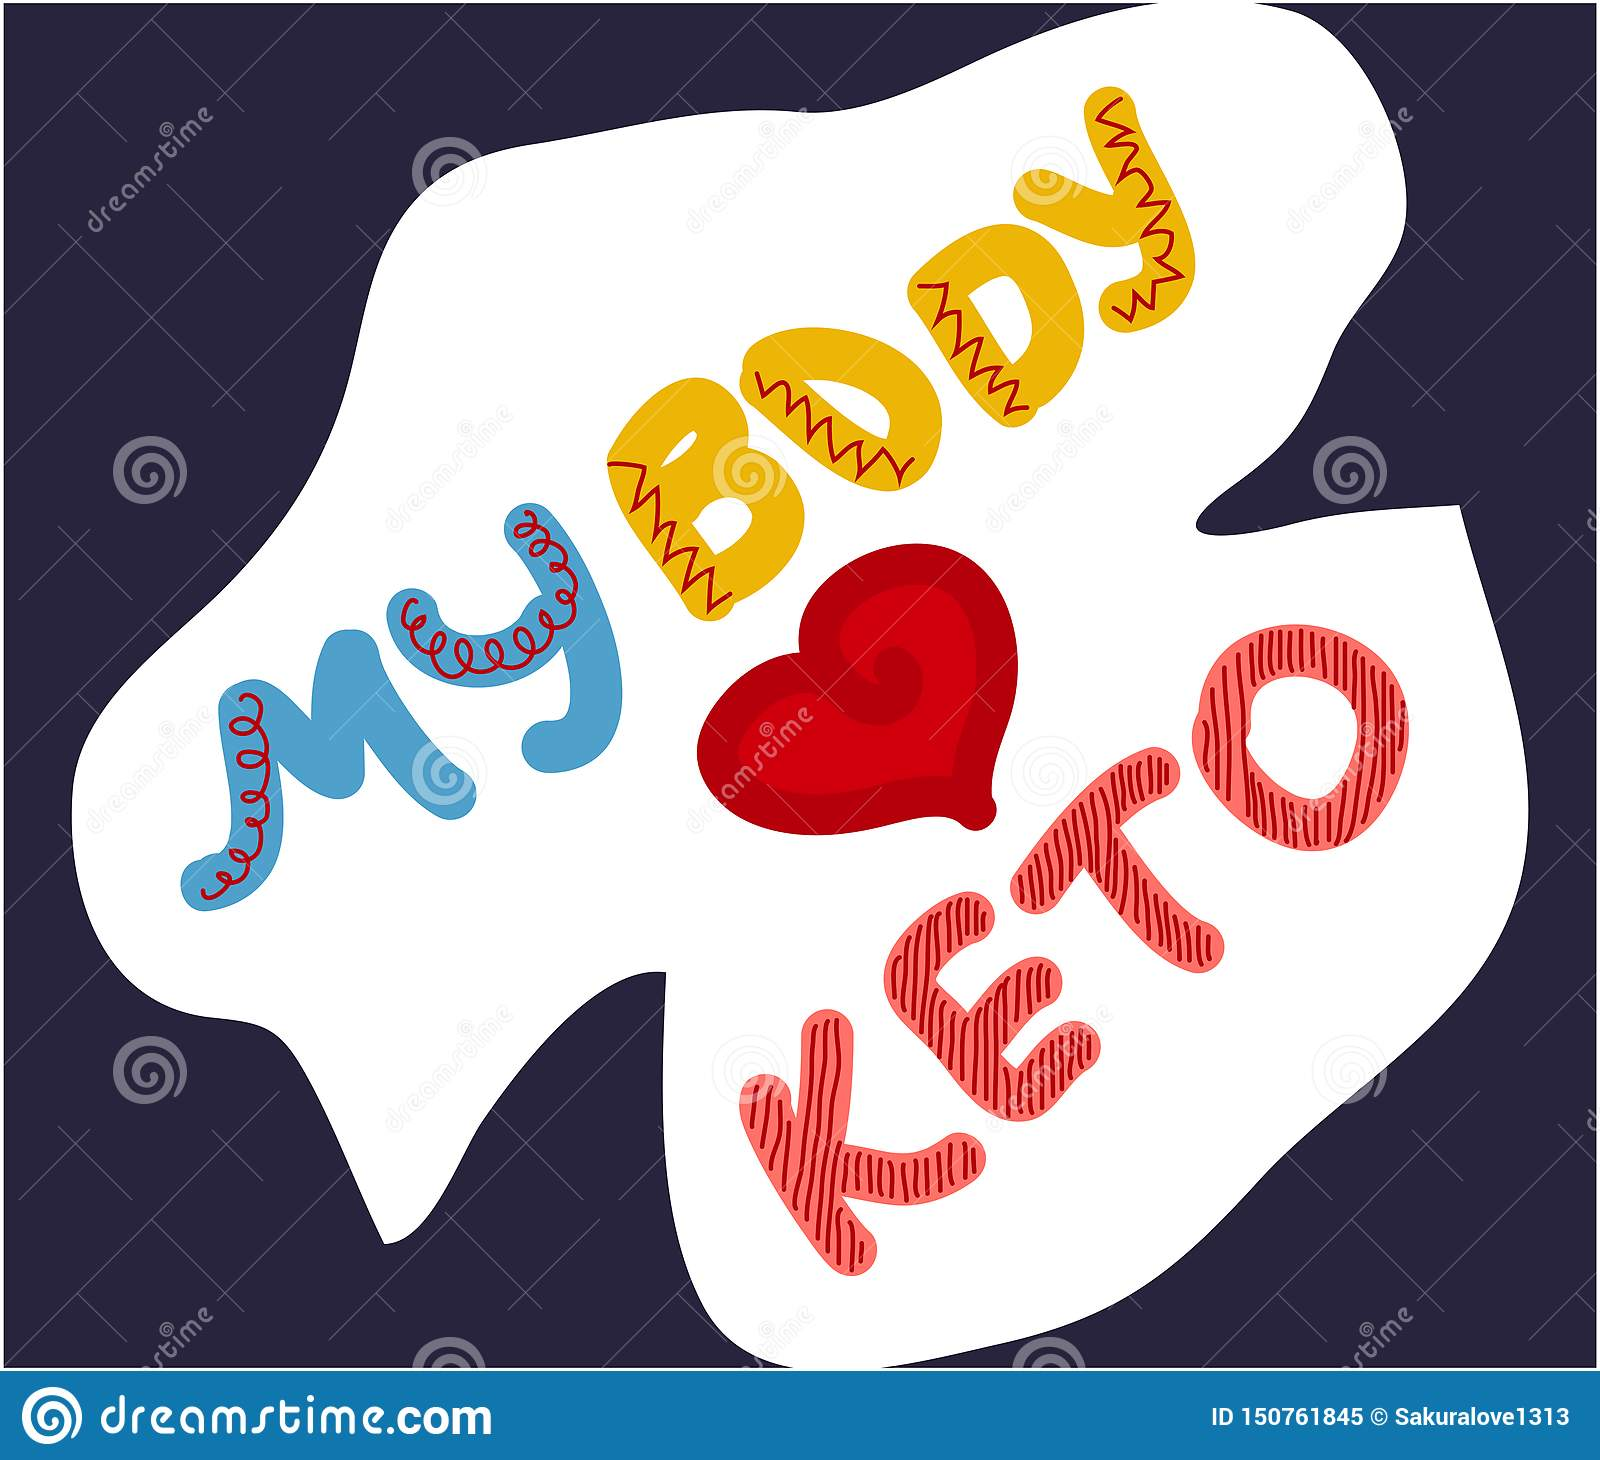 Keto diet hand drawn lettering. Low carb diet clipart, sticker. My body loves keto quote